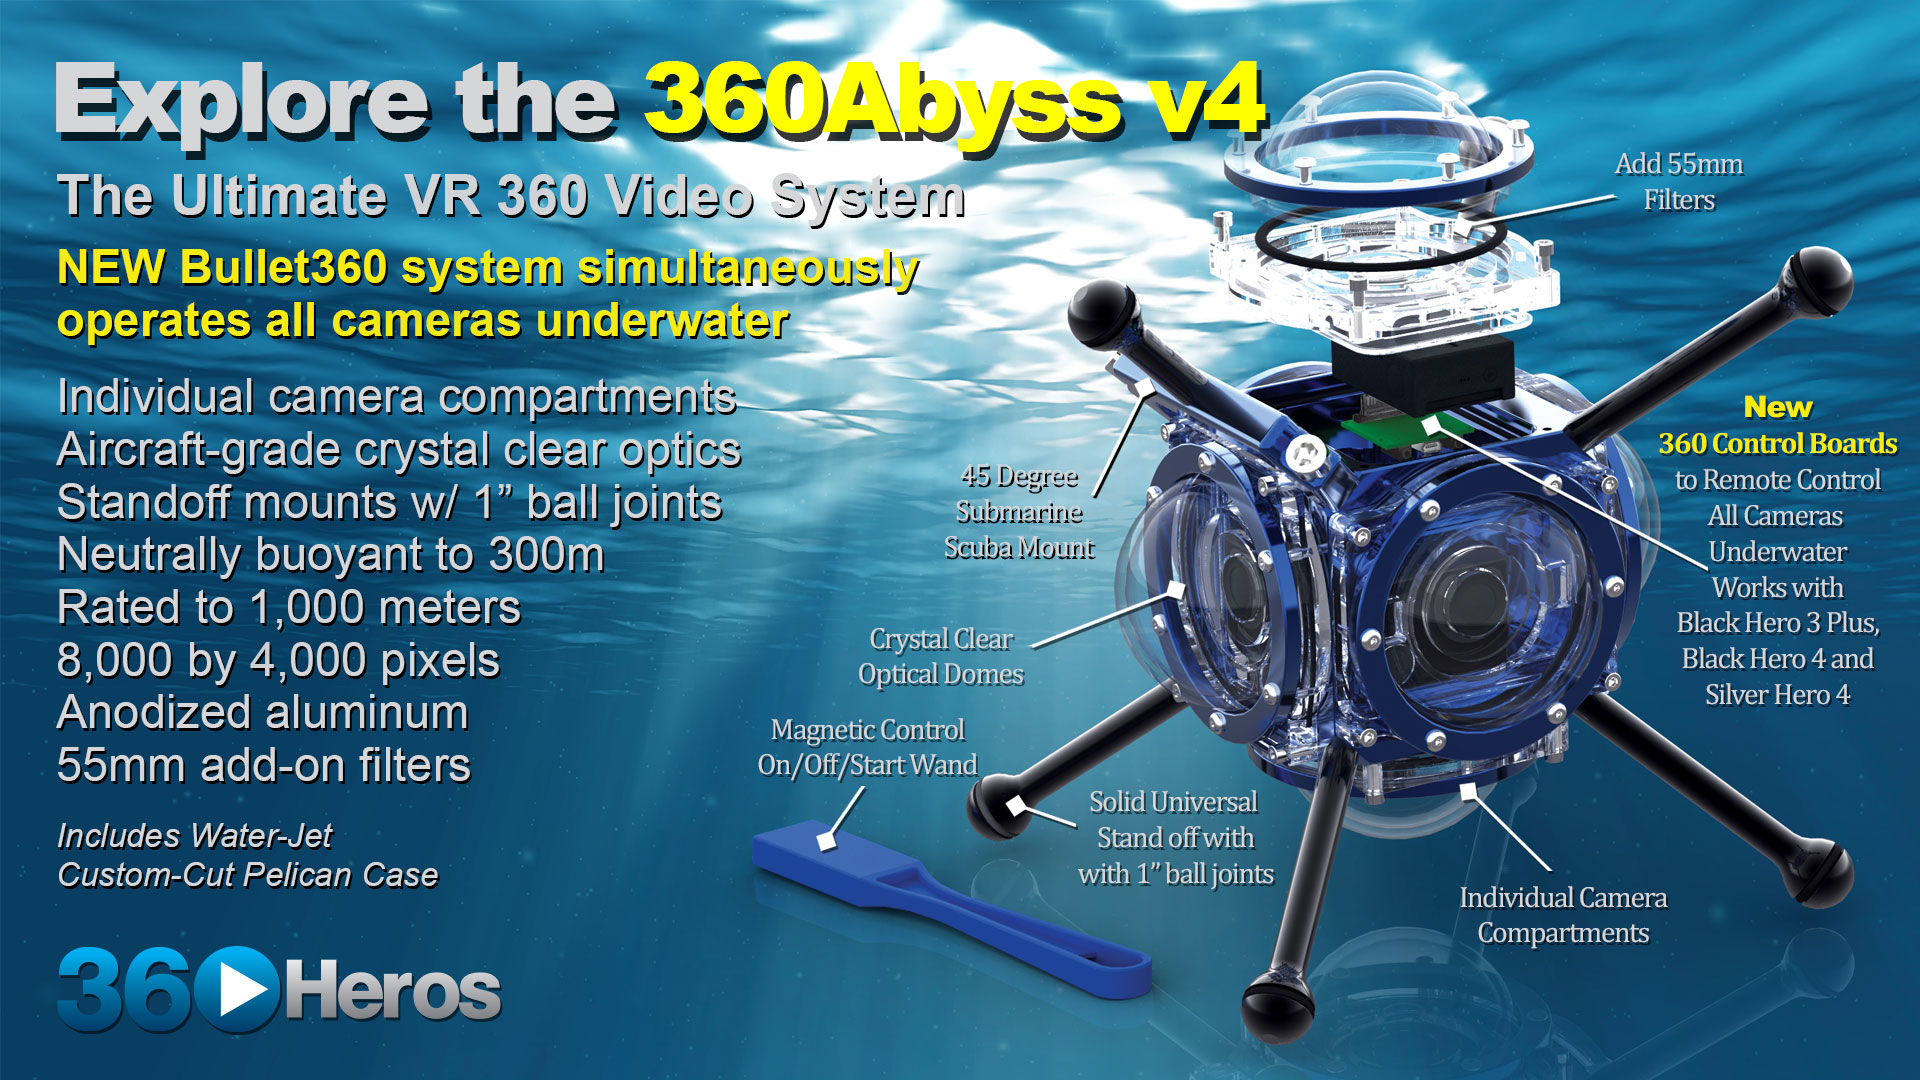 360Heros' 360Abyss v4 Adds Magnetic Camera Control, Automates VR 360 Video Underwater